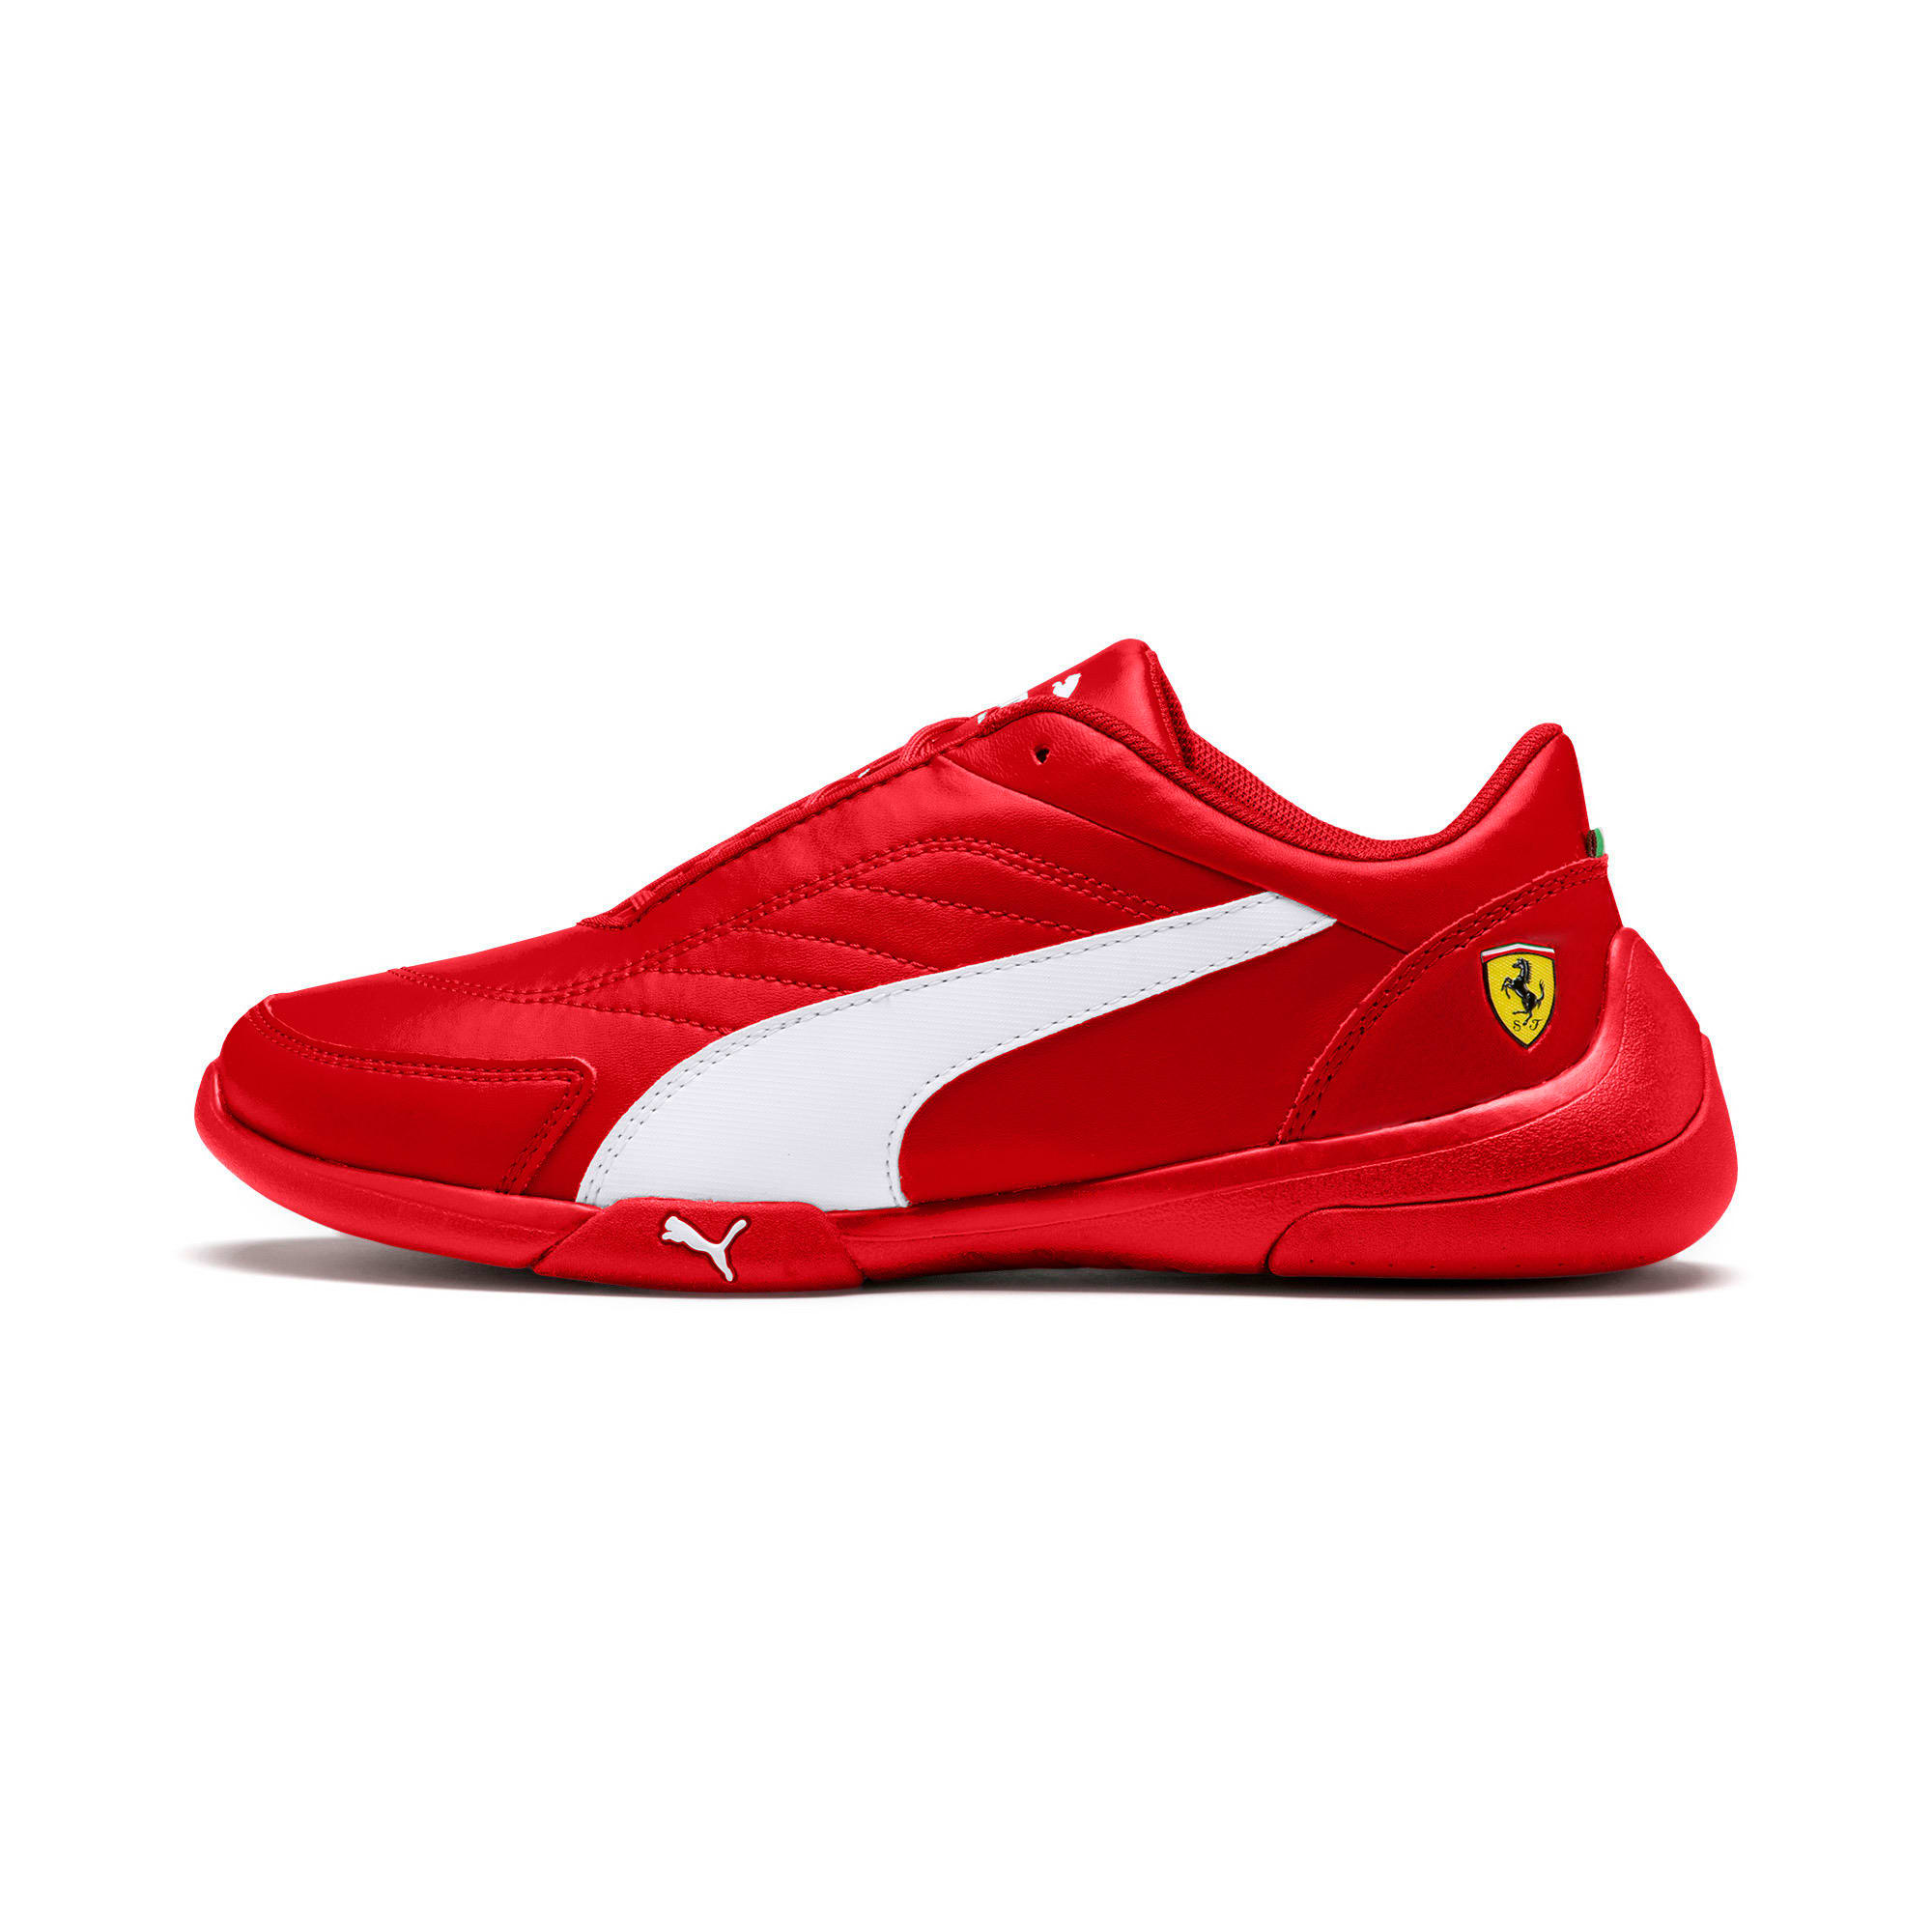 Thumbnail 1 of Ferrari Kart Cat III Youth Trainers, Rosso Corsa-Wht-Rosso Corsa, medium